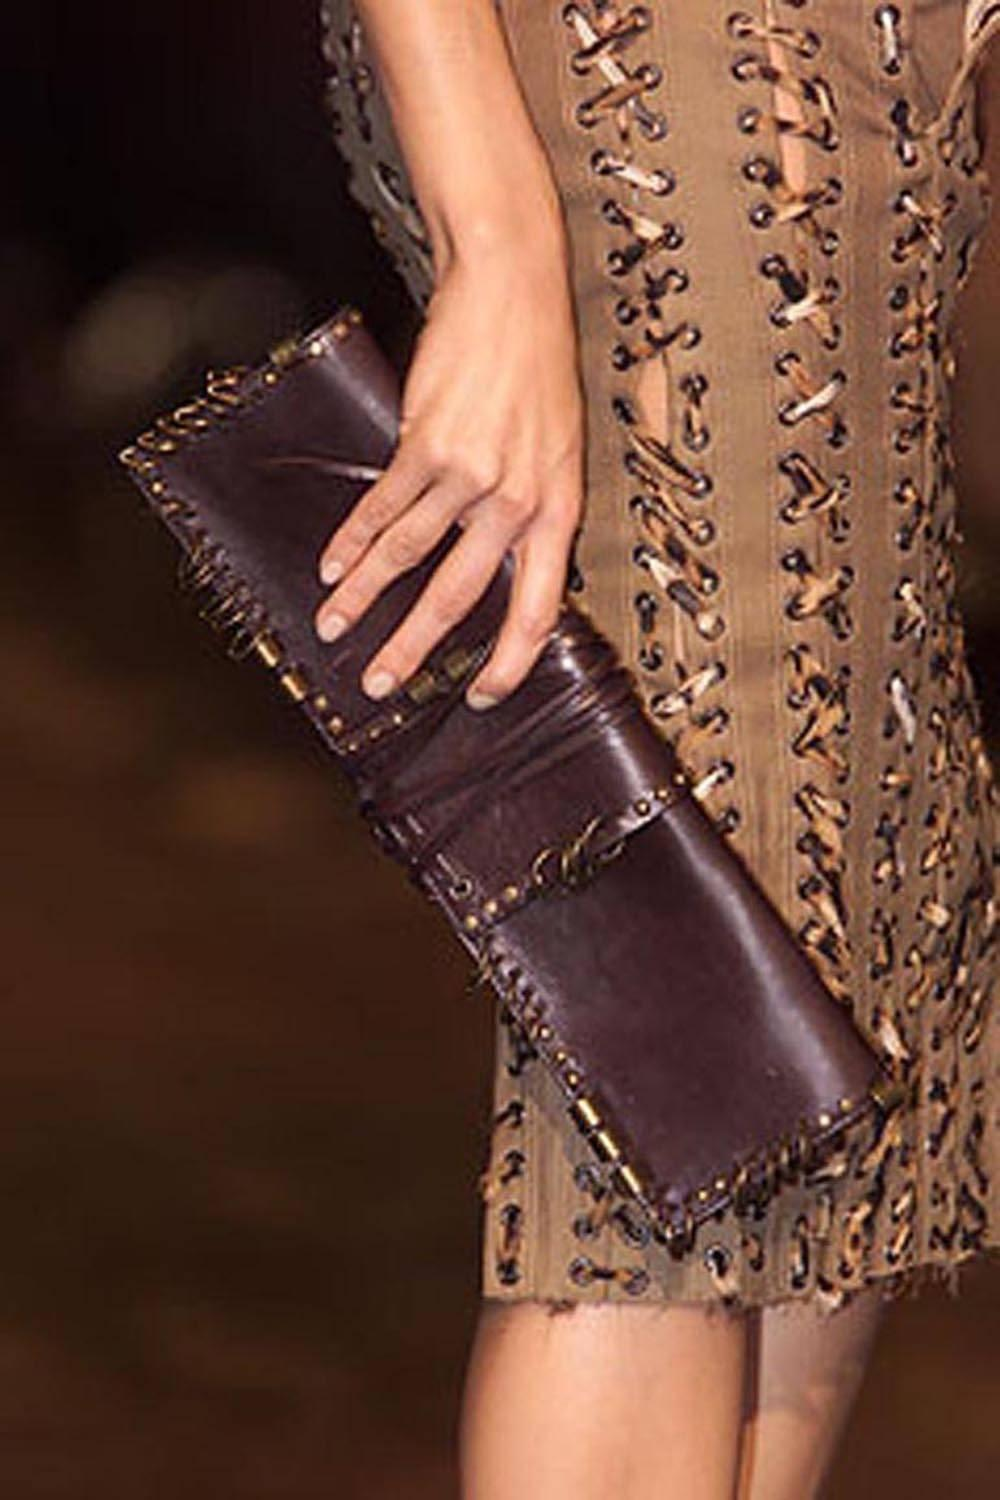 Saint Laurent Rare Tom Ford For Yves Saint Laurent S/s 2002 Runway Brown Ring Leather Clutch EepVeZW0vX